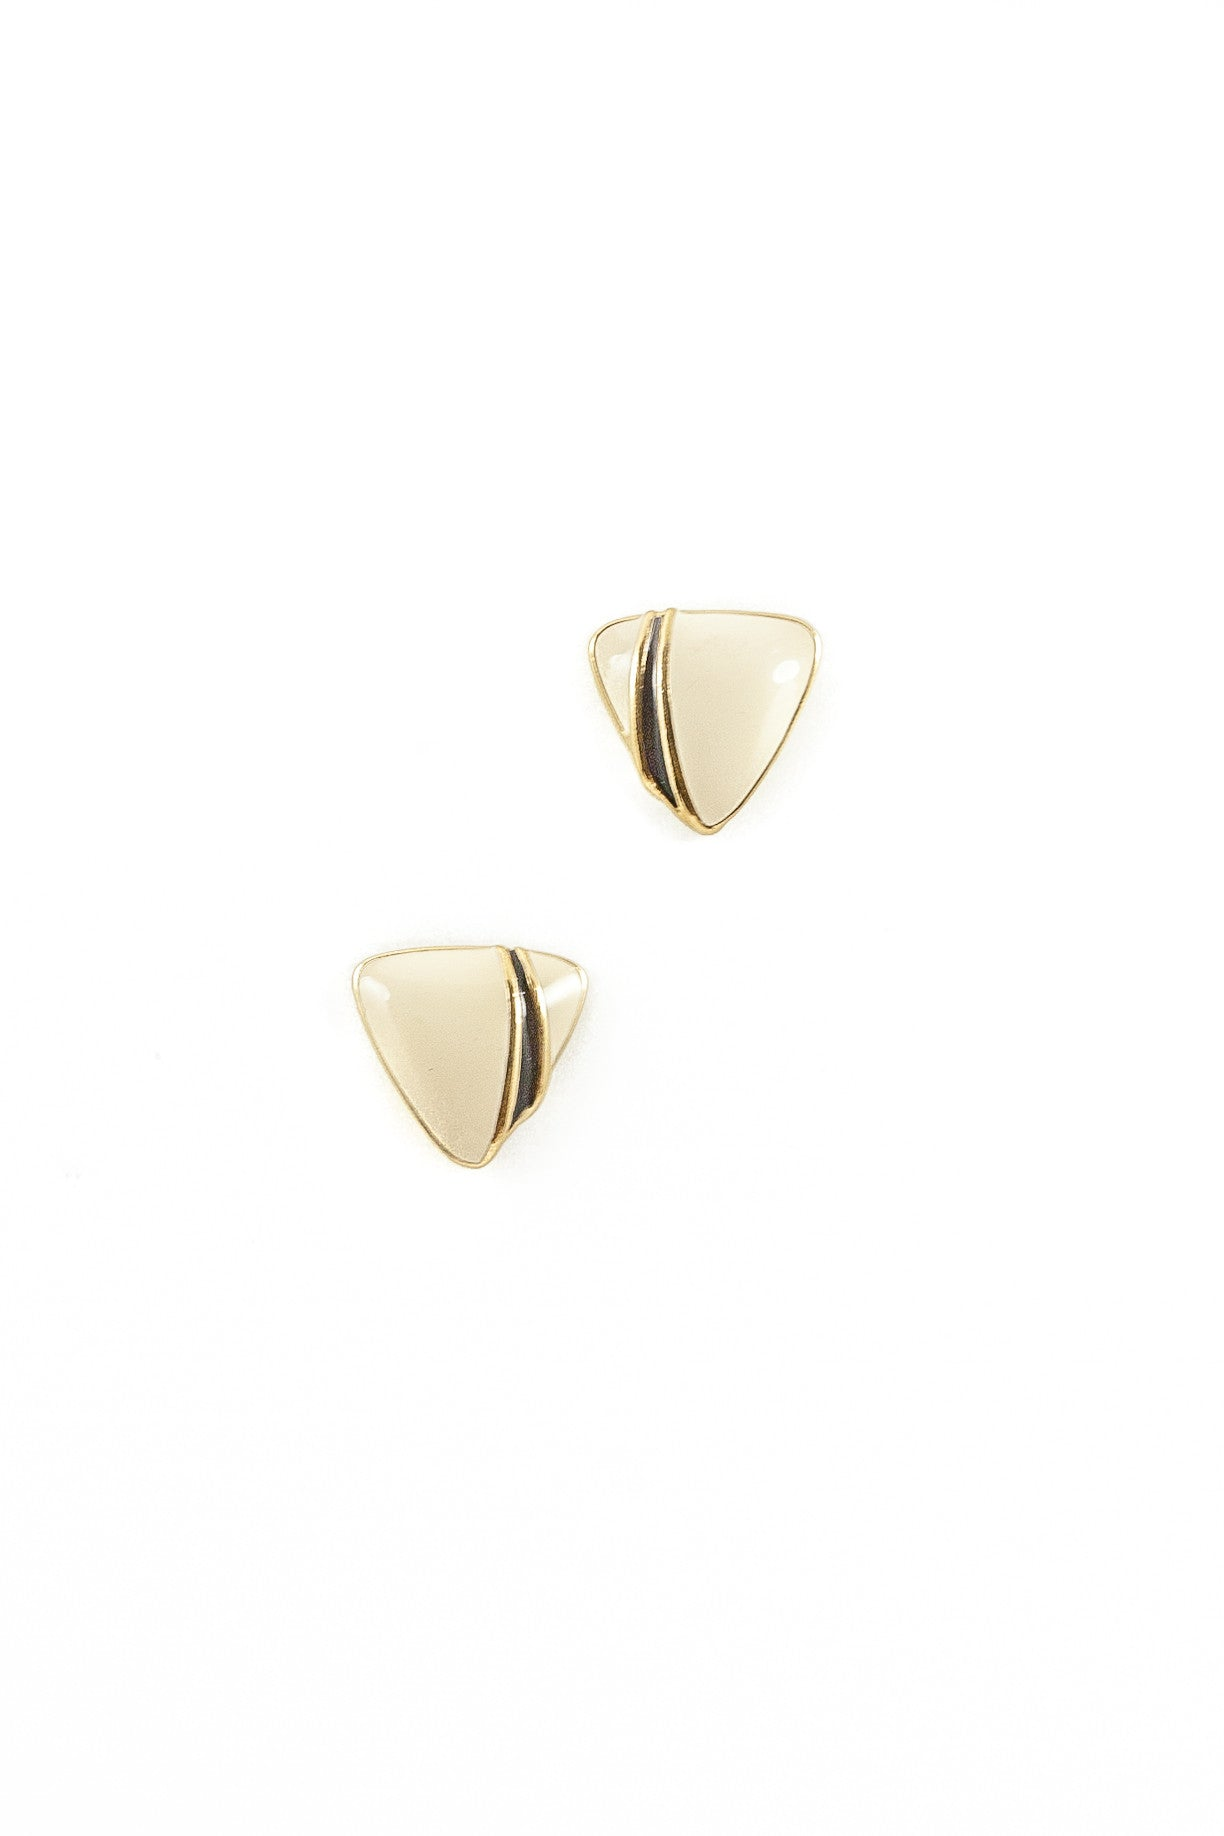 70's__Trifari__Triangle Enamel Statement Studs